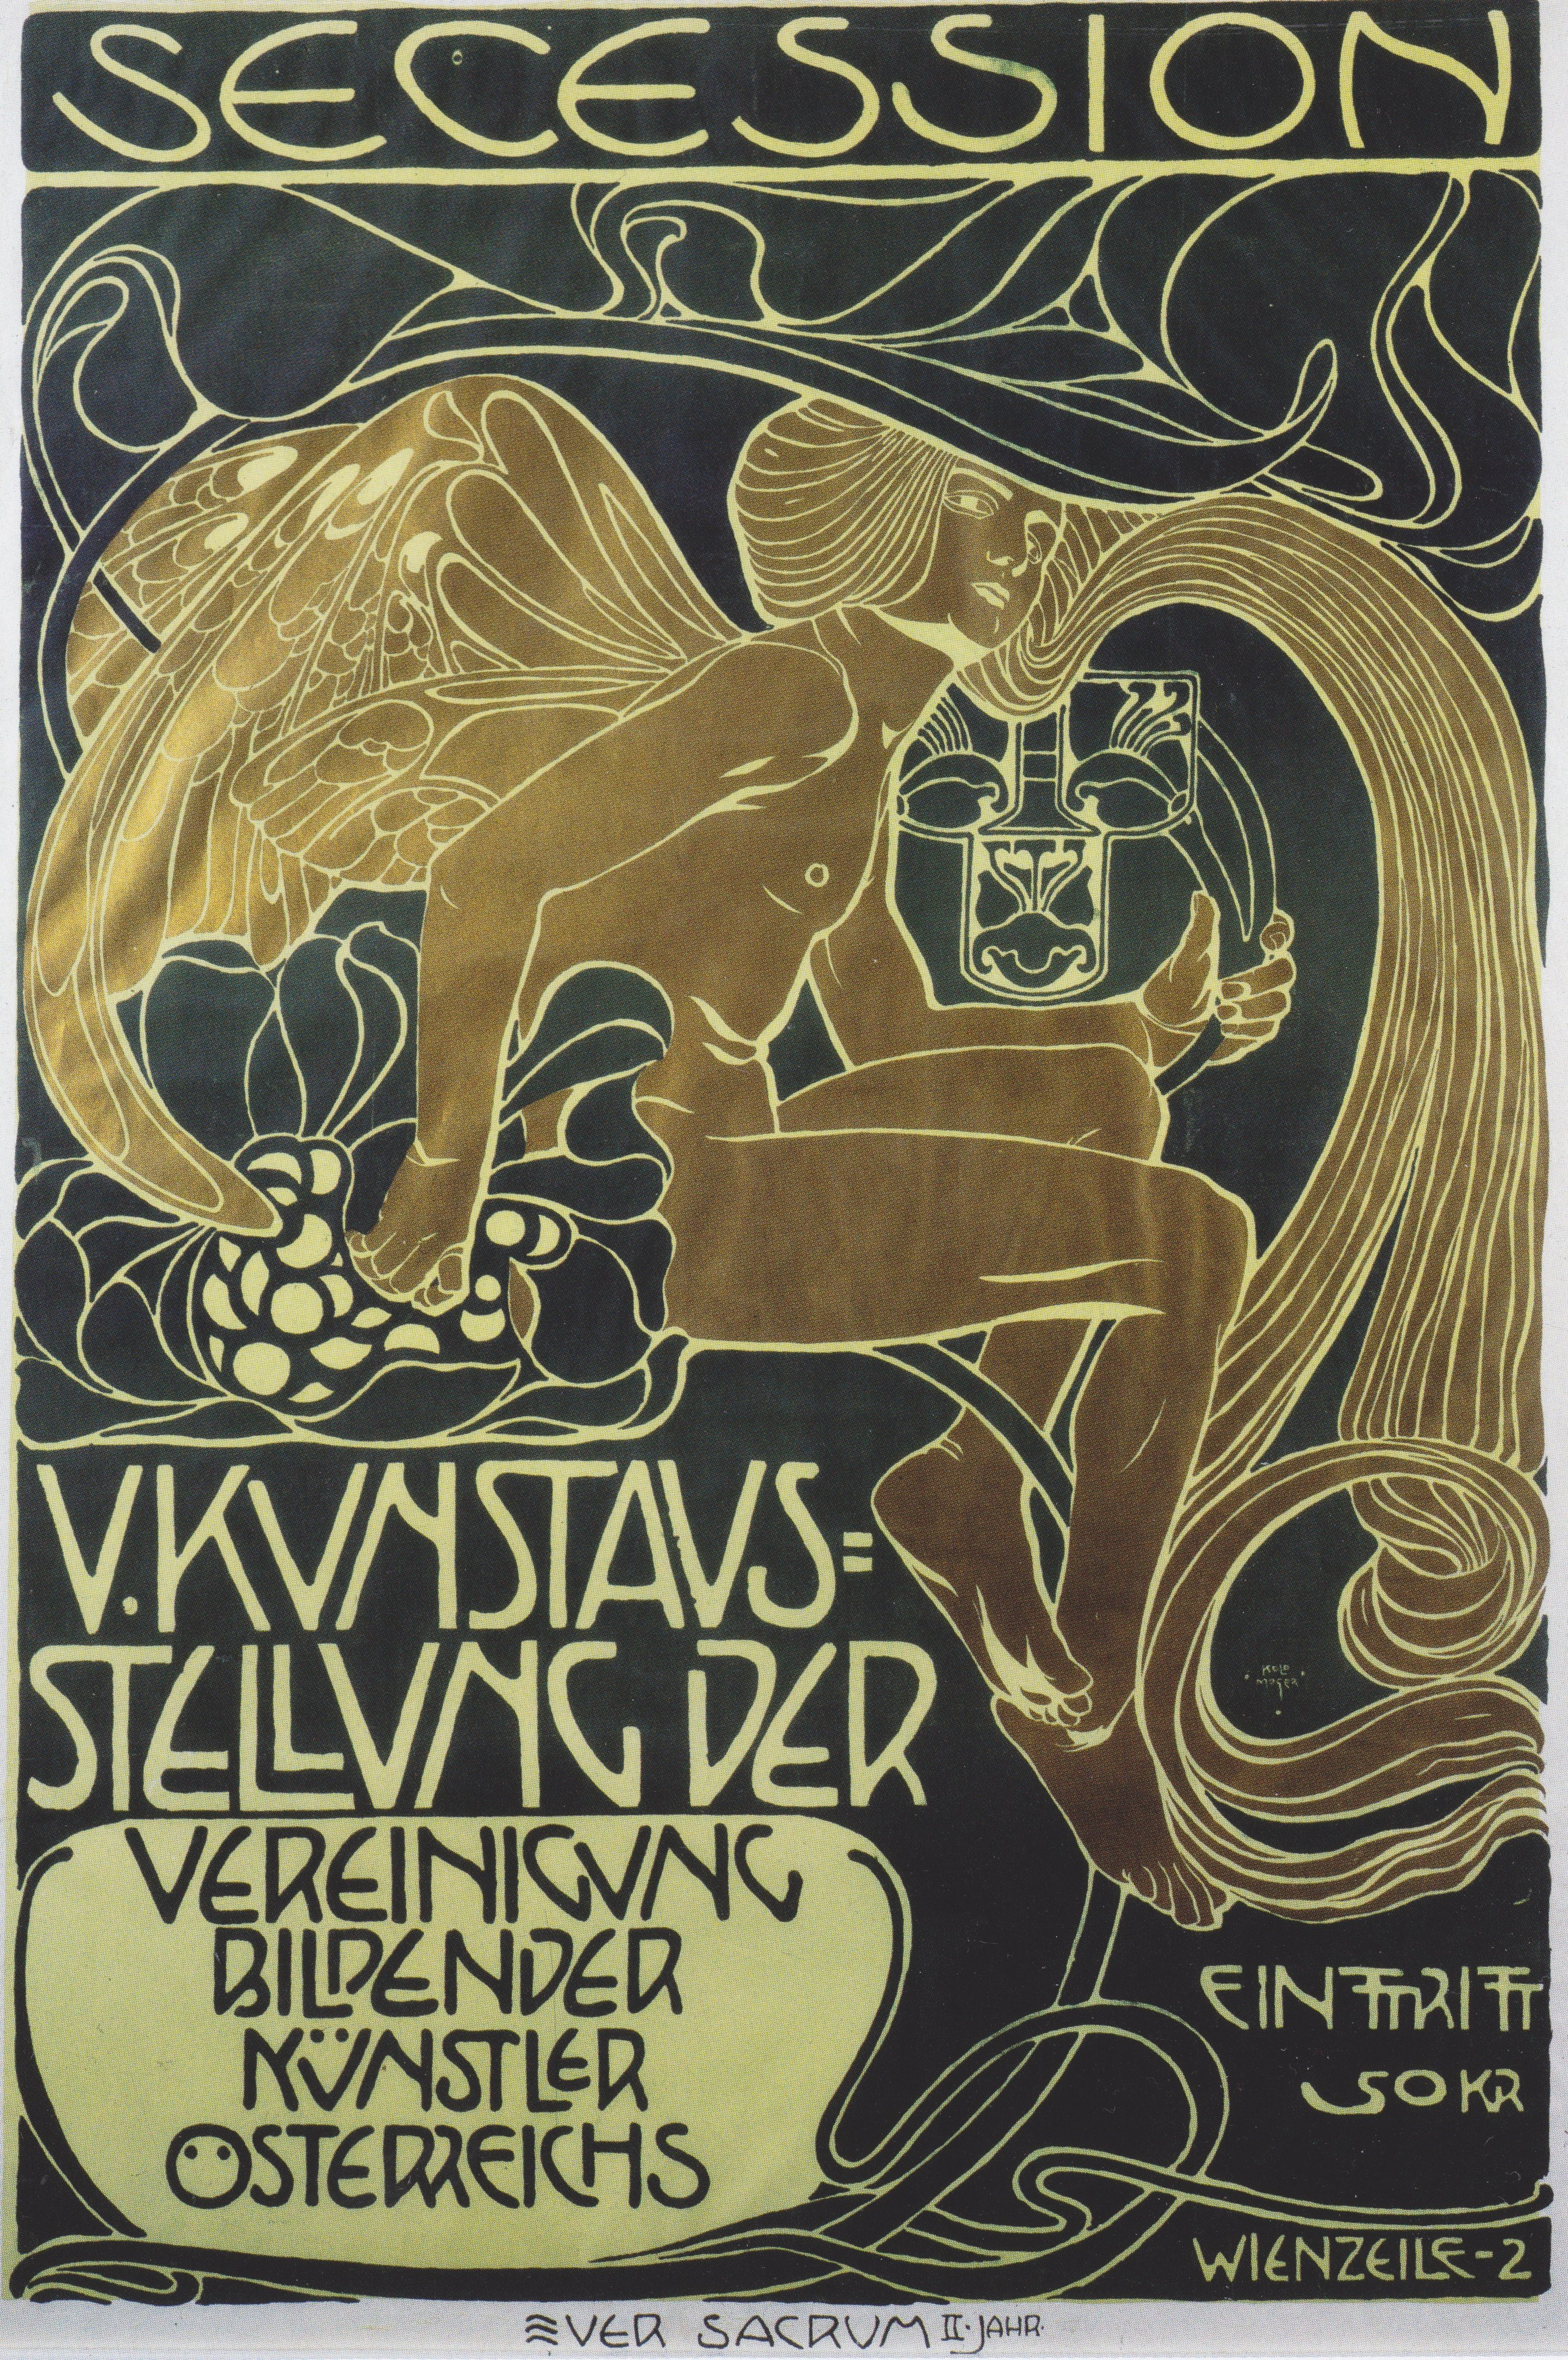 art nouveau movement essay The history and characteristics of the art nouveau movement  art nouveau movement, maison de l art nouveau, siegfried bing  sign up to view the complete essay.